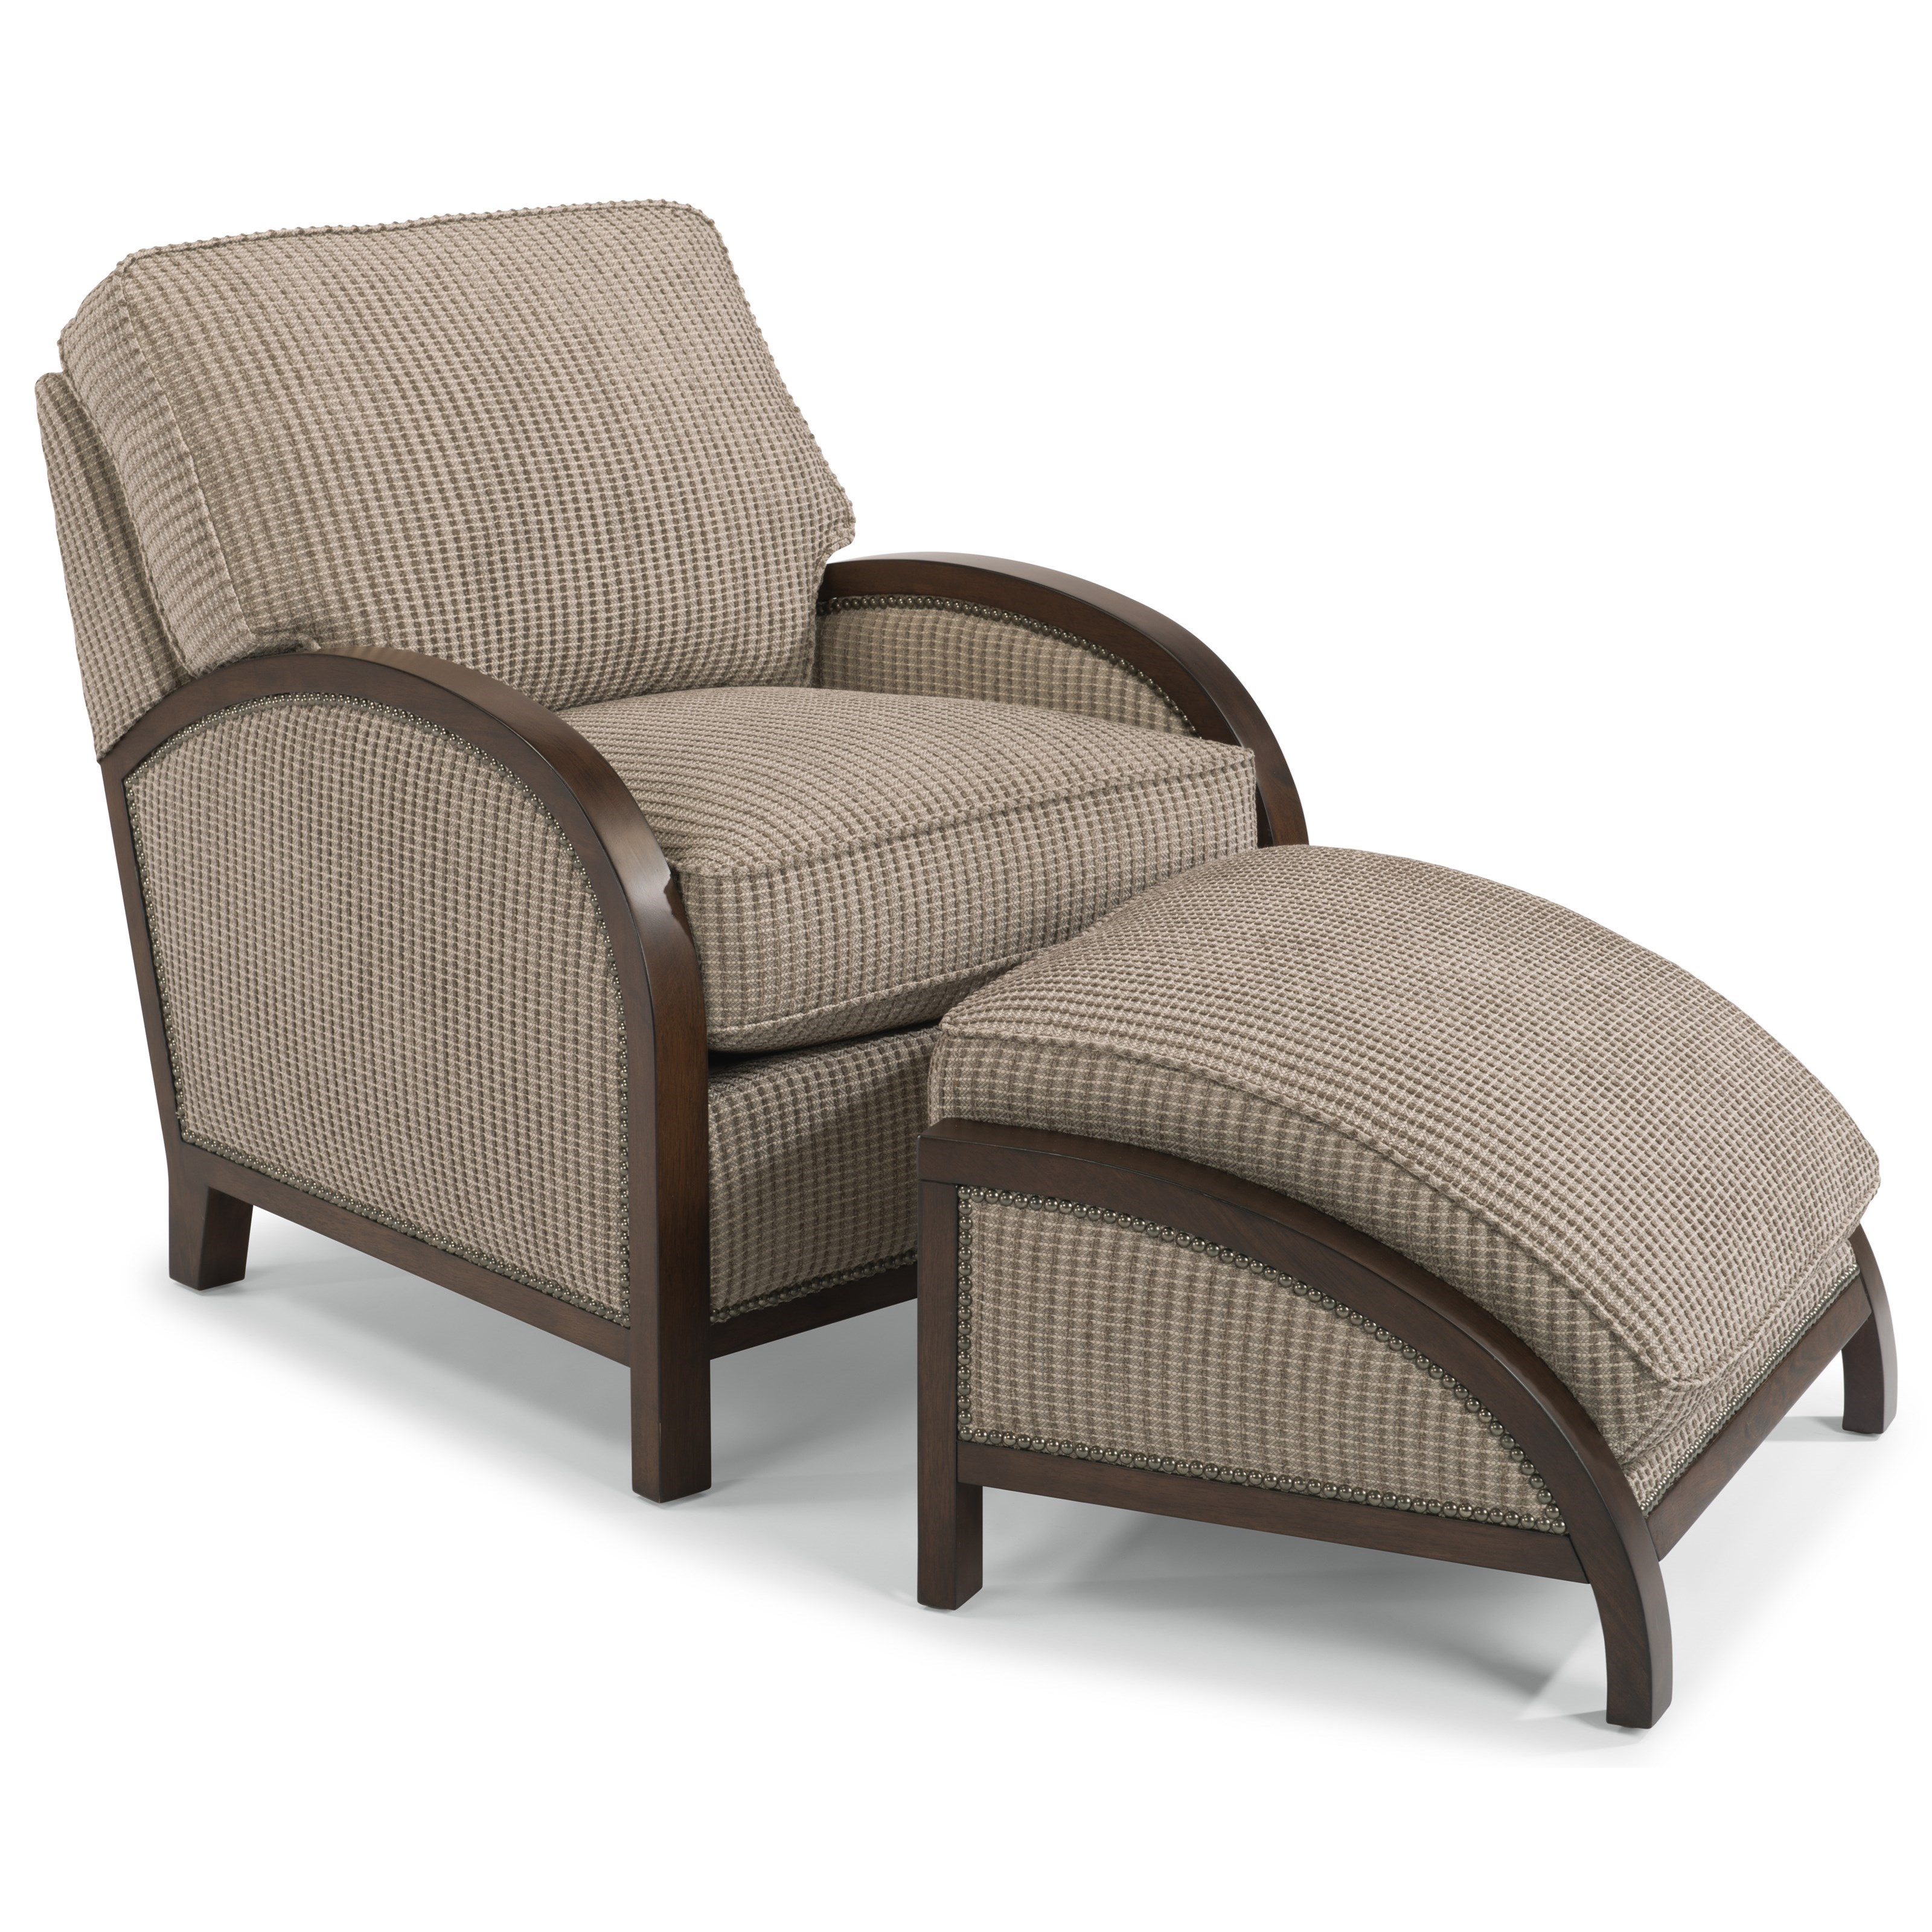 Flexsteel Accents Comac Chair and Ottoman Set - Item Number: 0117-10+08-052-01